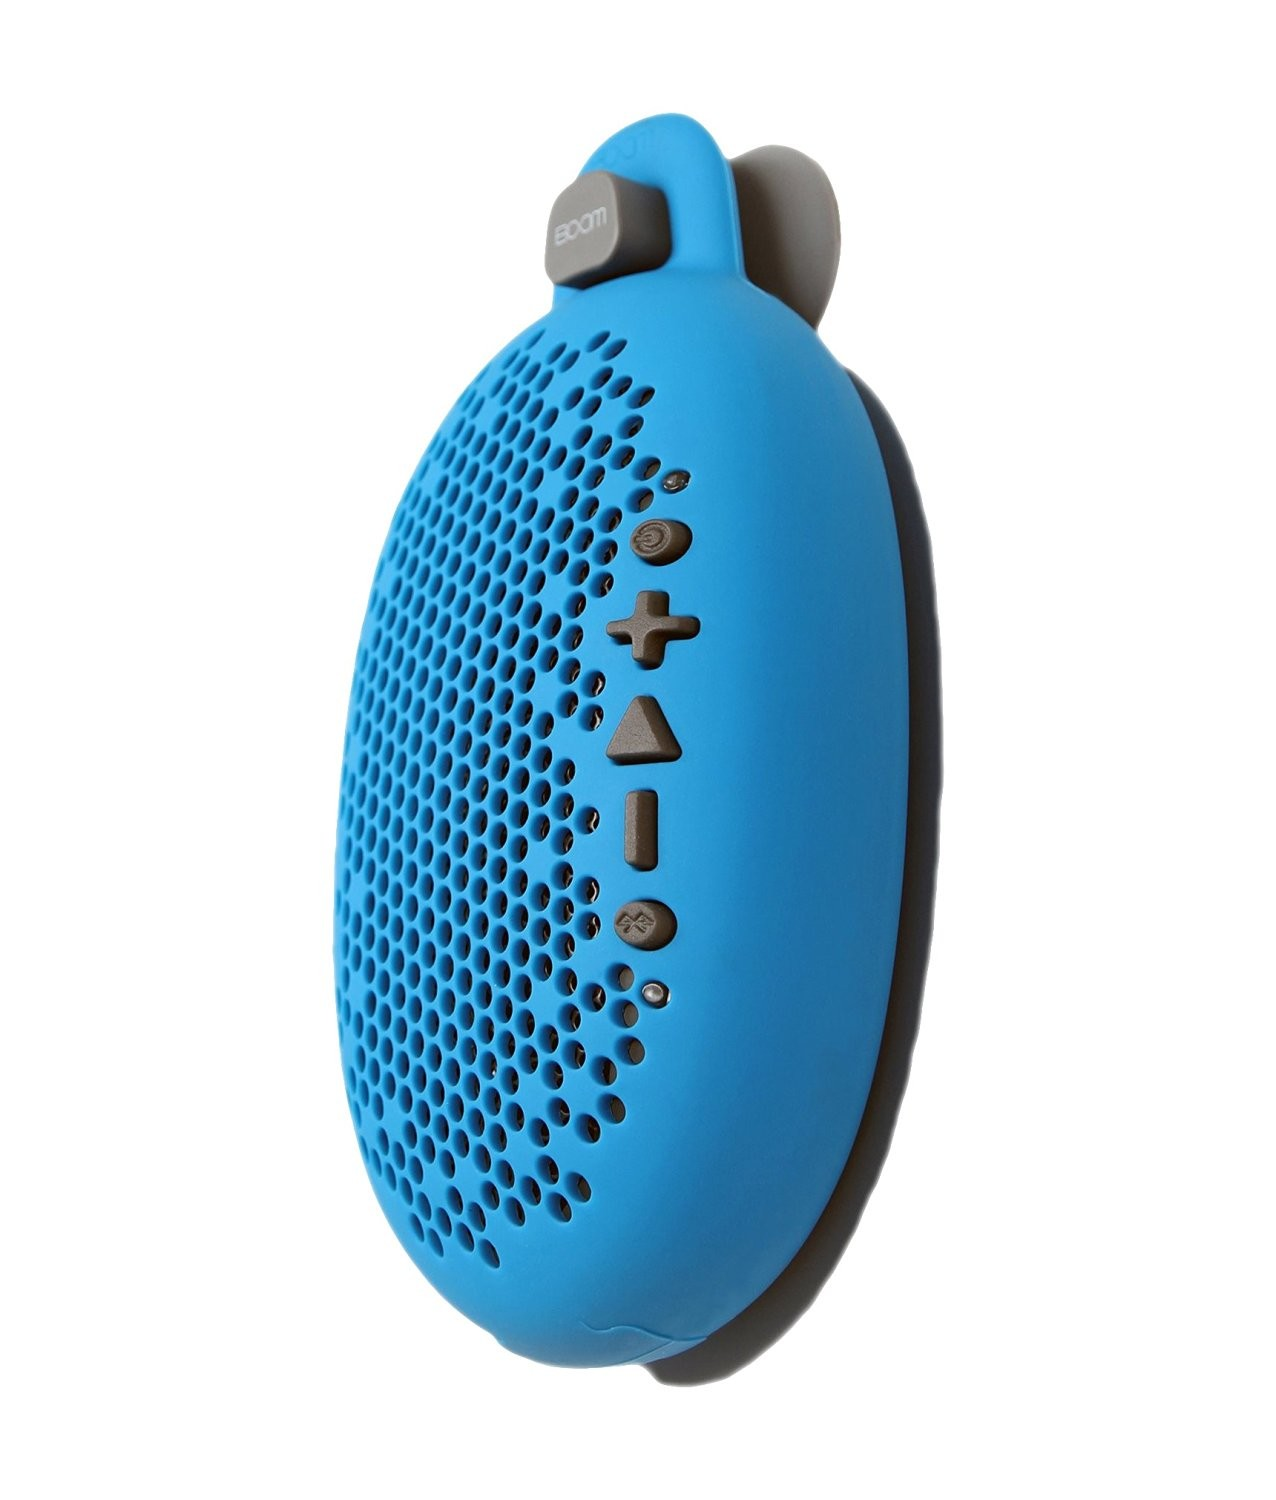 Boom Urchin Ready 4 Anything Bluetooth Speaker, Water Resistant, Shower Speaker - Blue